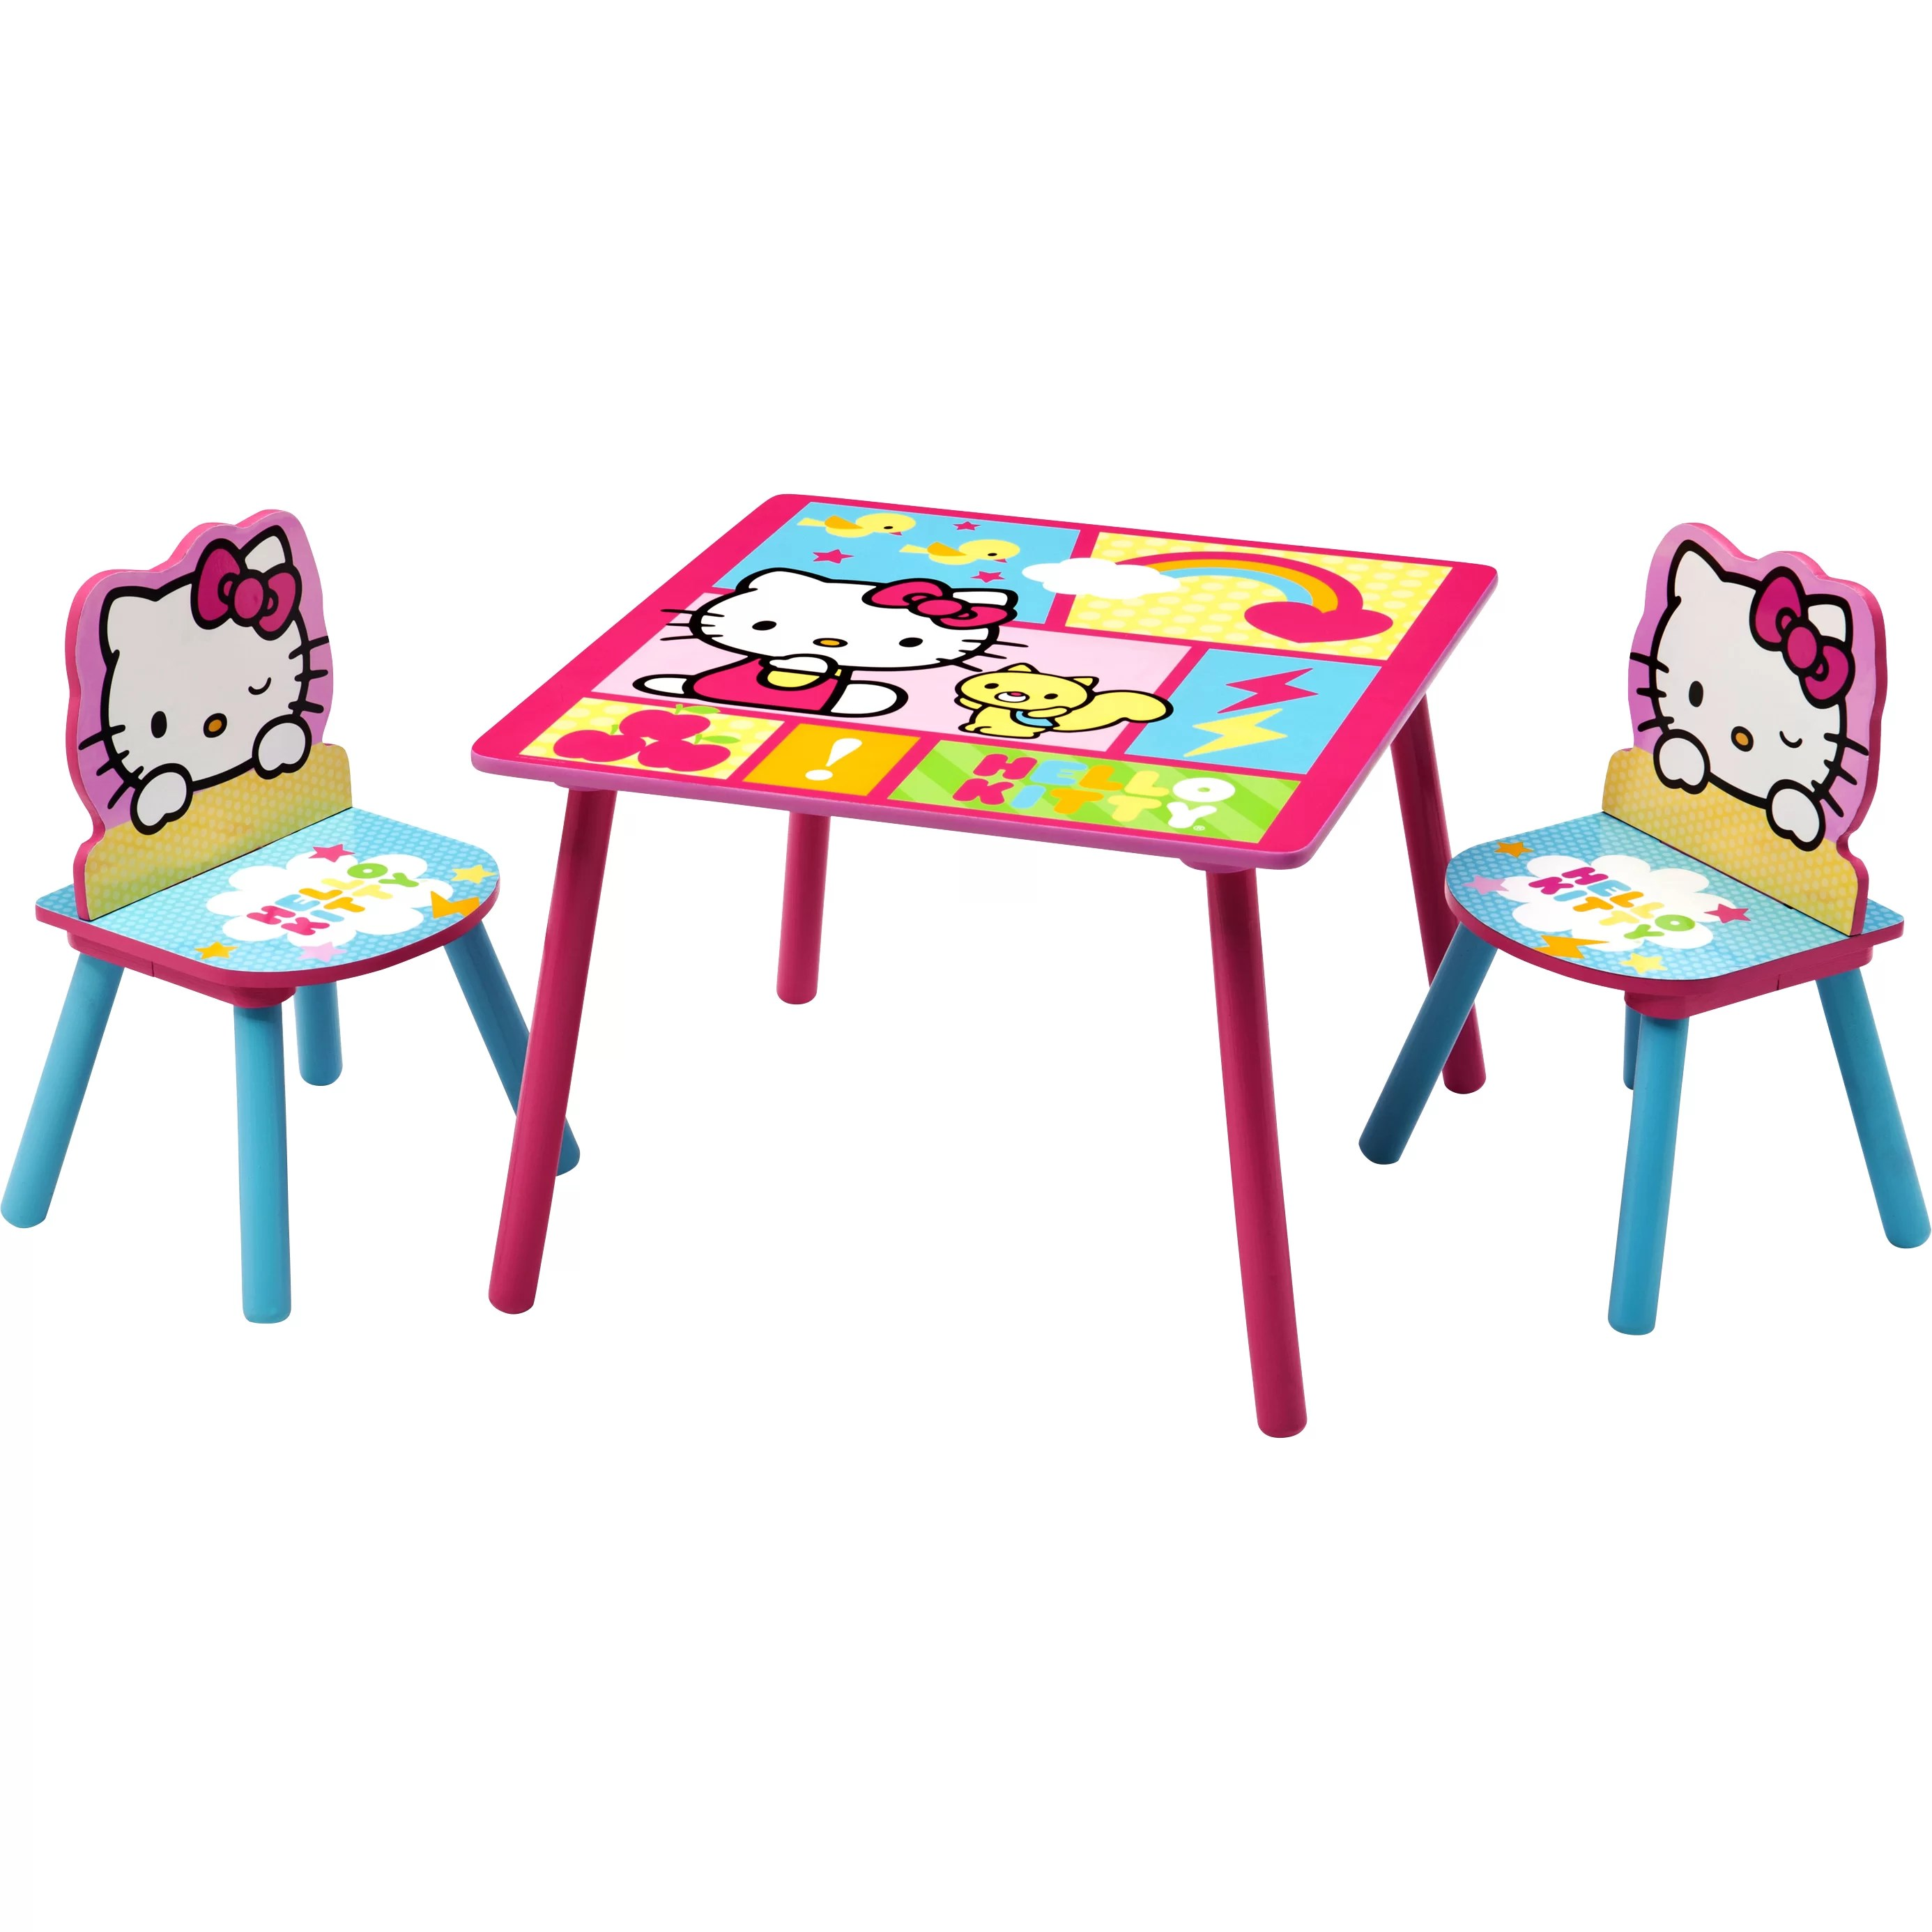 target baby chair and table cool high chairs delta children hello kitty kids 39 3 piece set